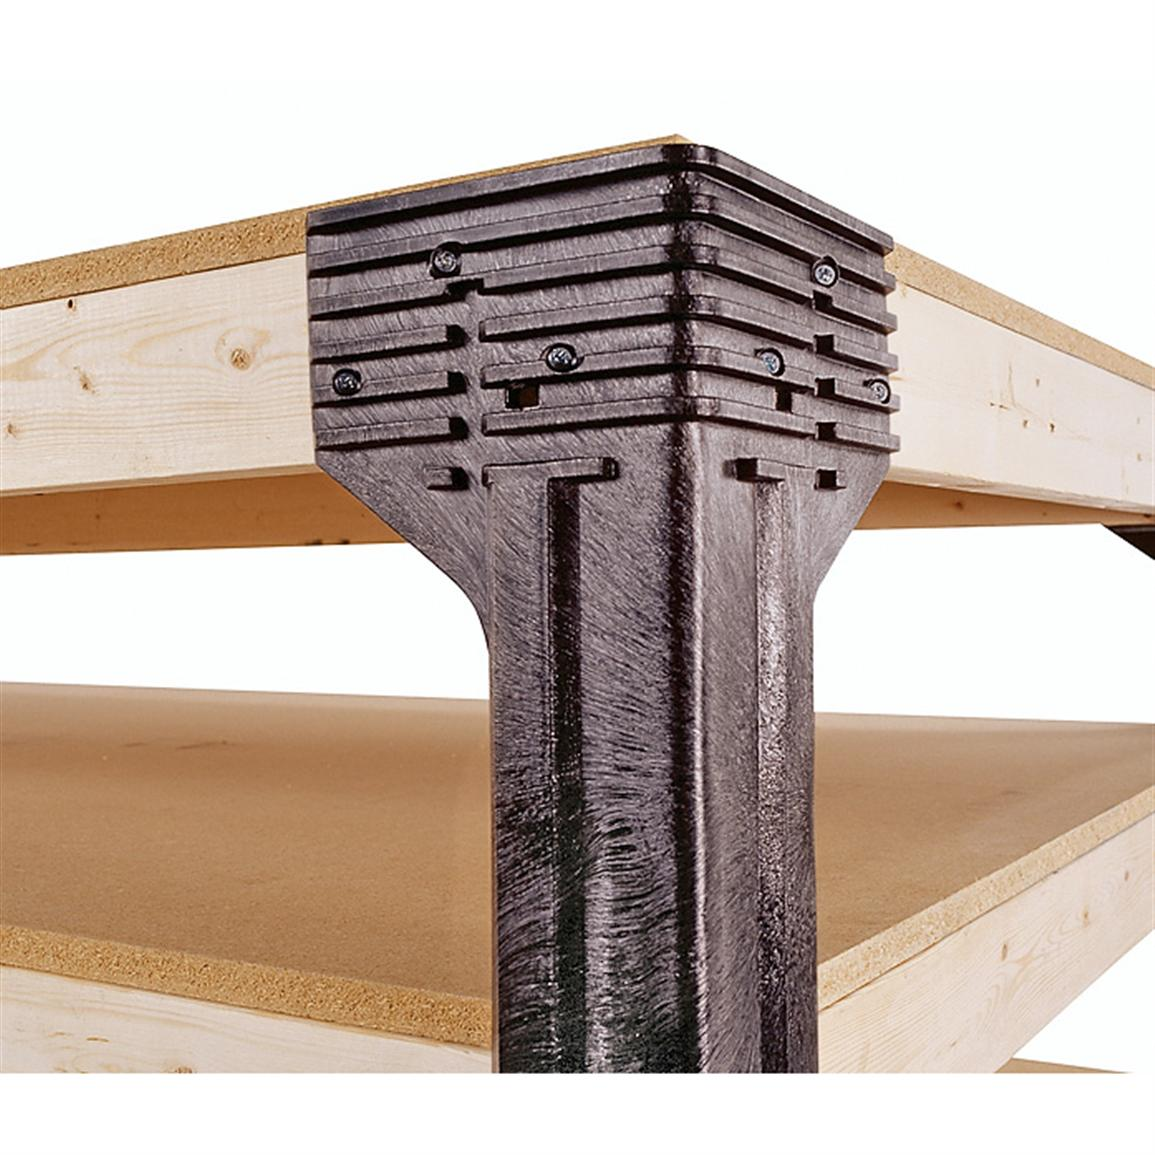 Metal Workbench Legs Kit | Workbench Table Legs | Work Bench Legs